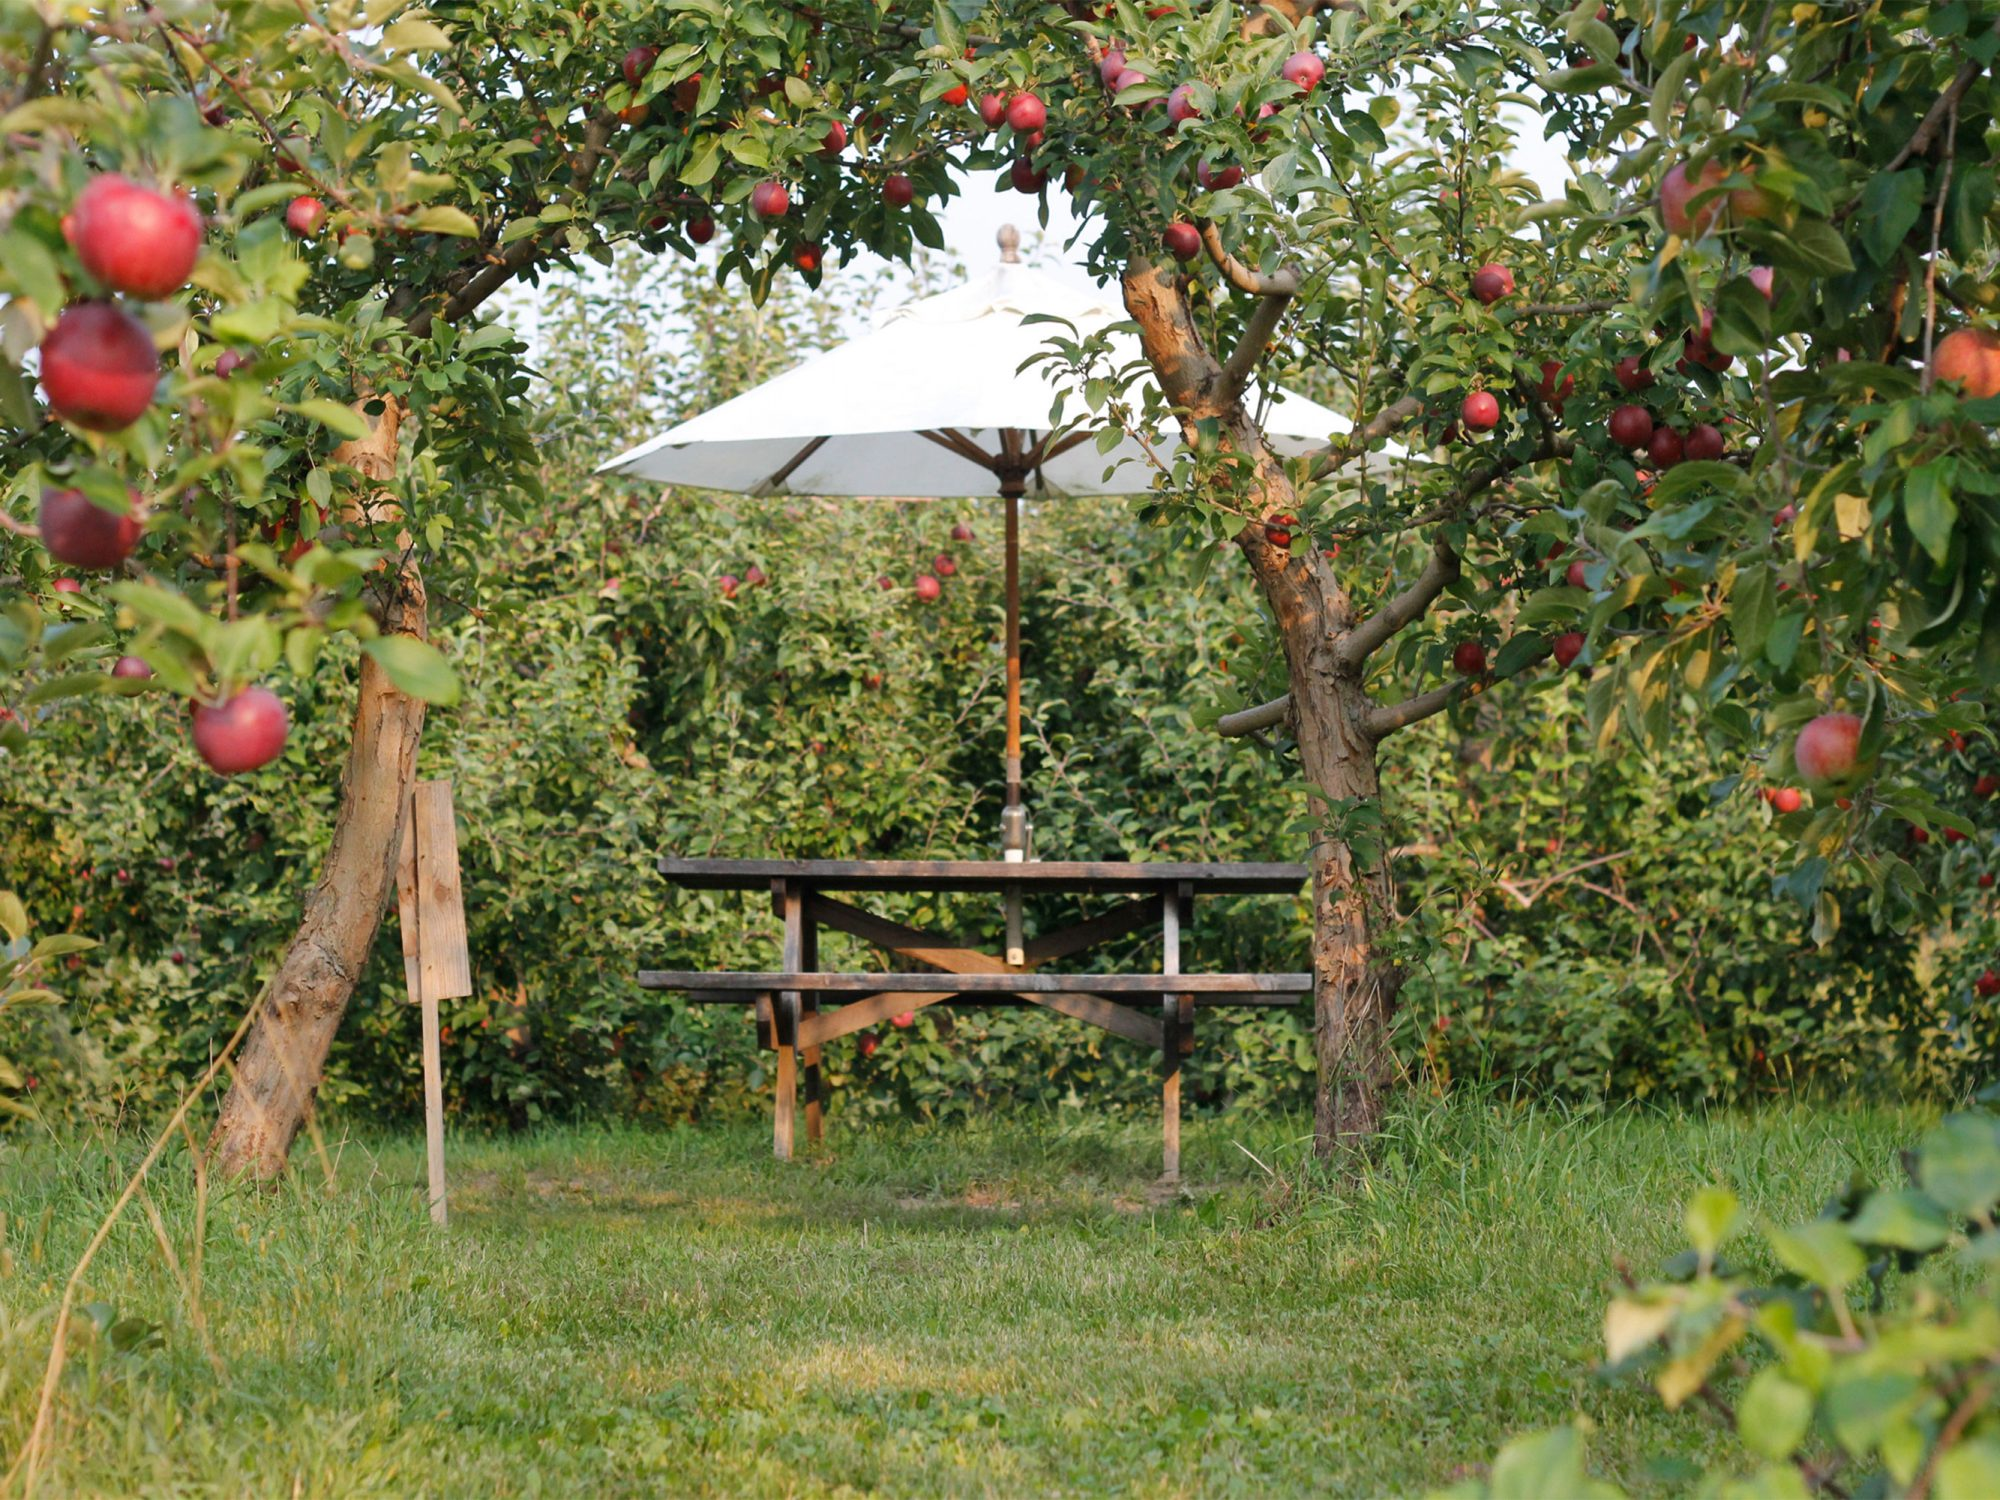 Shelburne Orchards Picnic Table